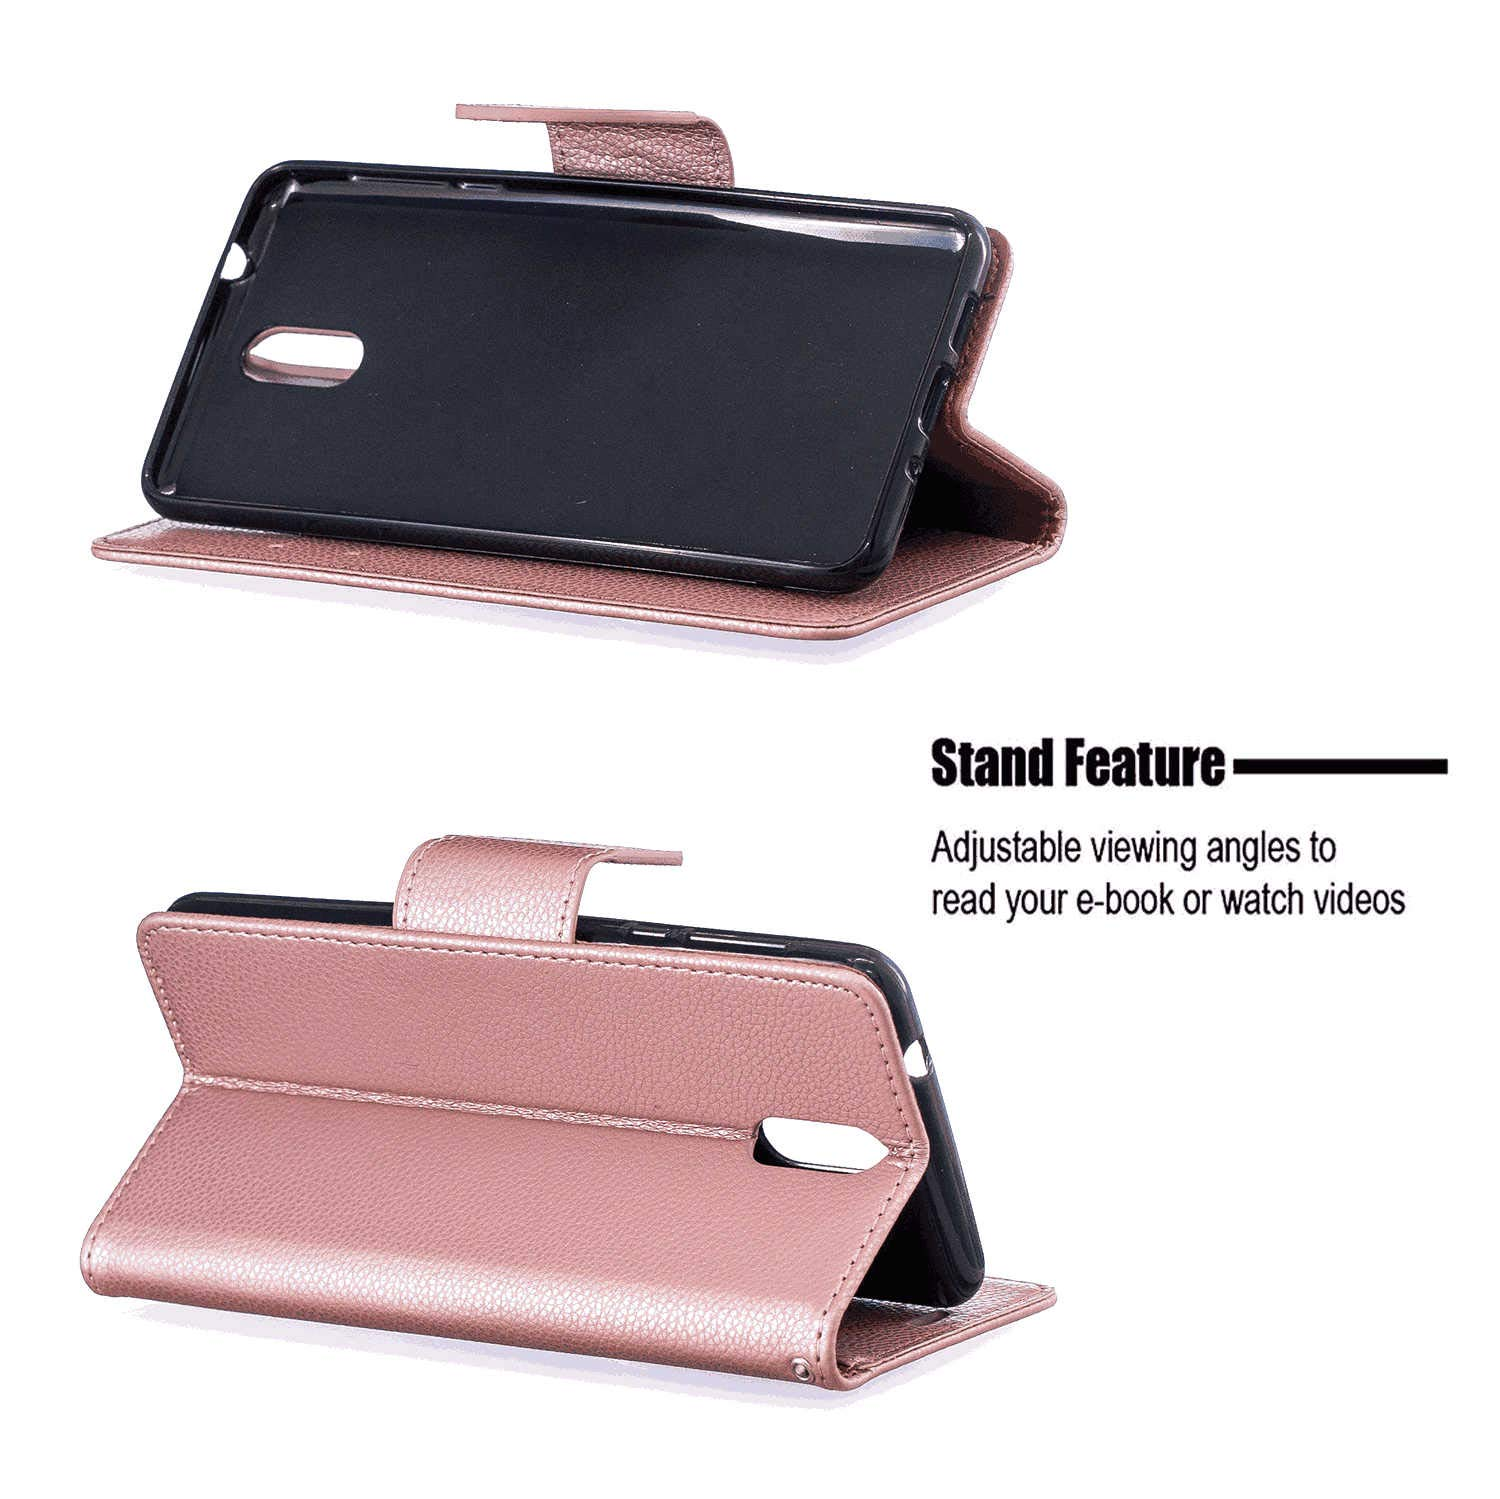 Cover for Huawei P30 Leather Kickstand mobile phone Cover Extra-Shockproof Business Card Holders with Free Waterproof-Bag Gripping Huawei P30 Flip Case